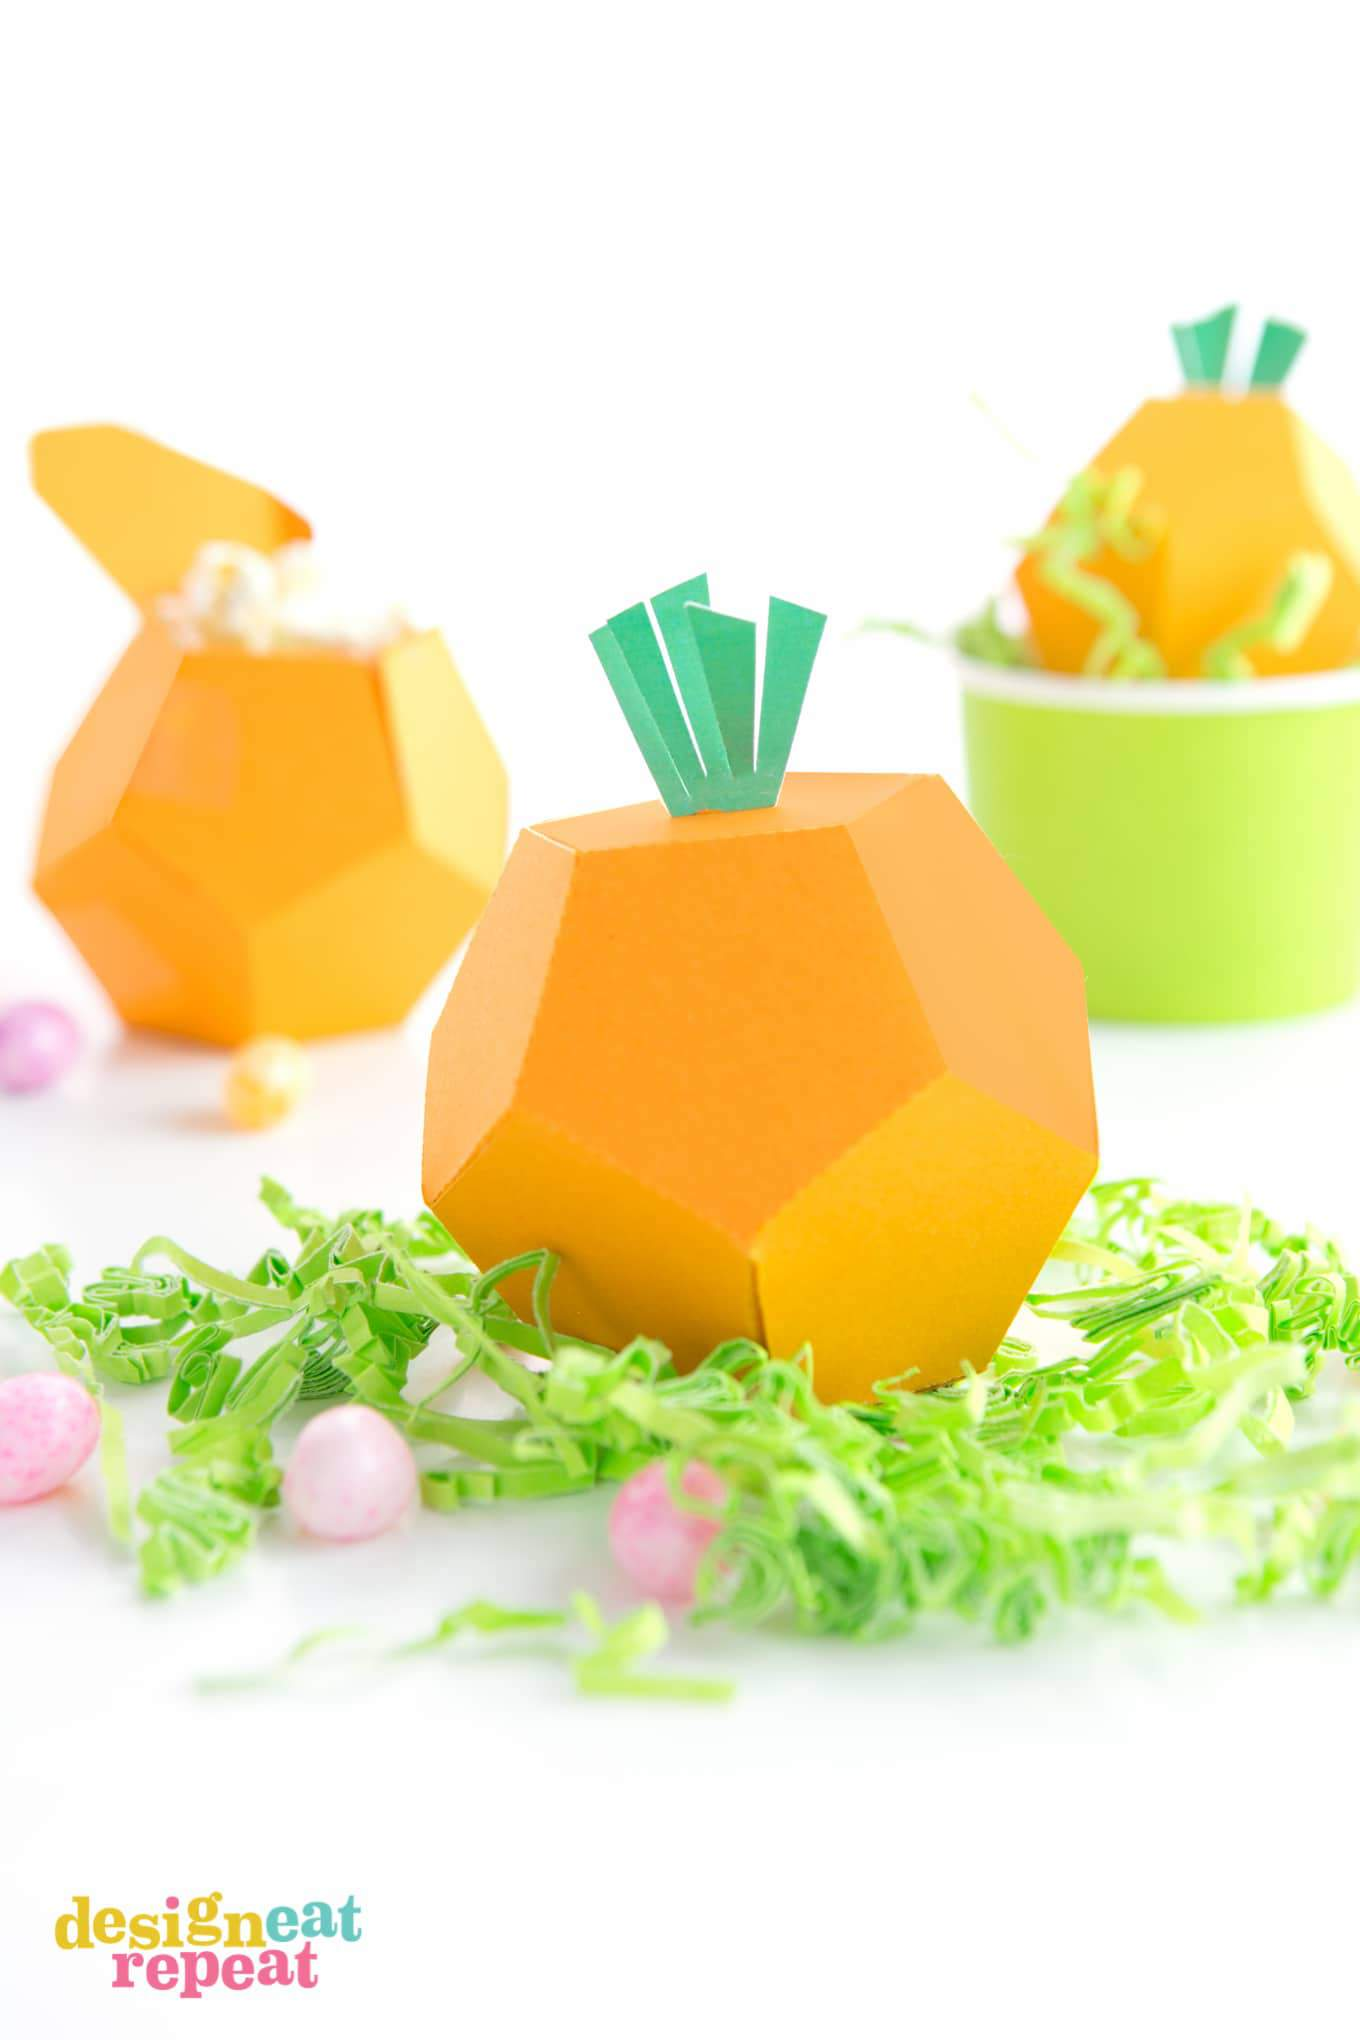 Download these printable carrot treat boxes, fill with candy, and have yourself an adorable little treat for Easter or Spring time goodies!